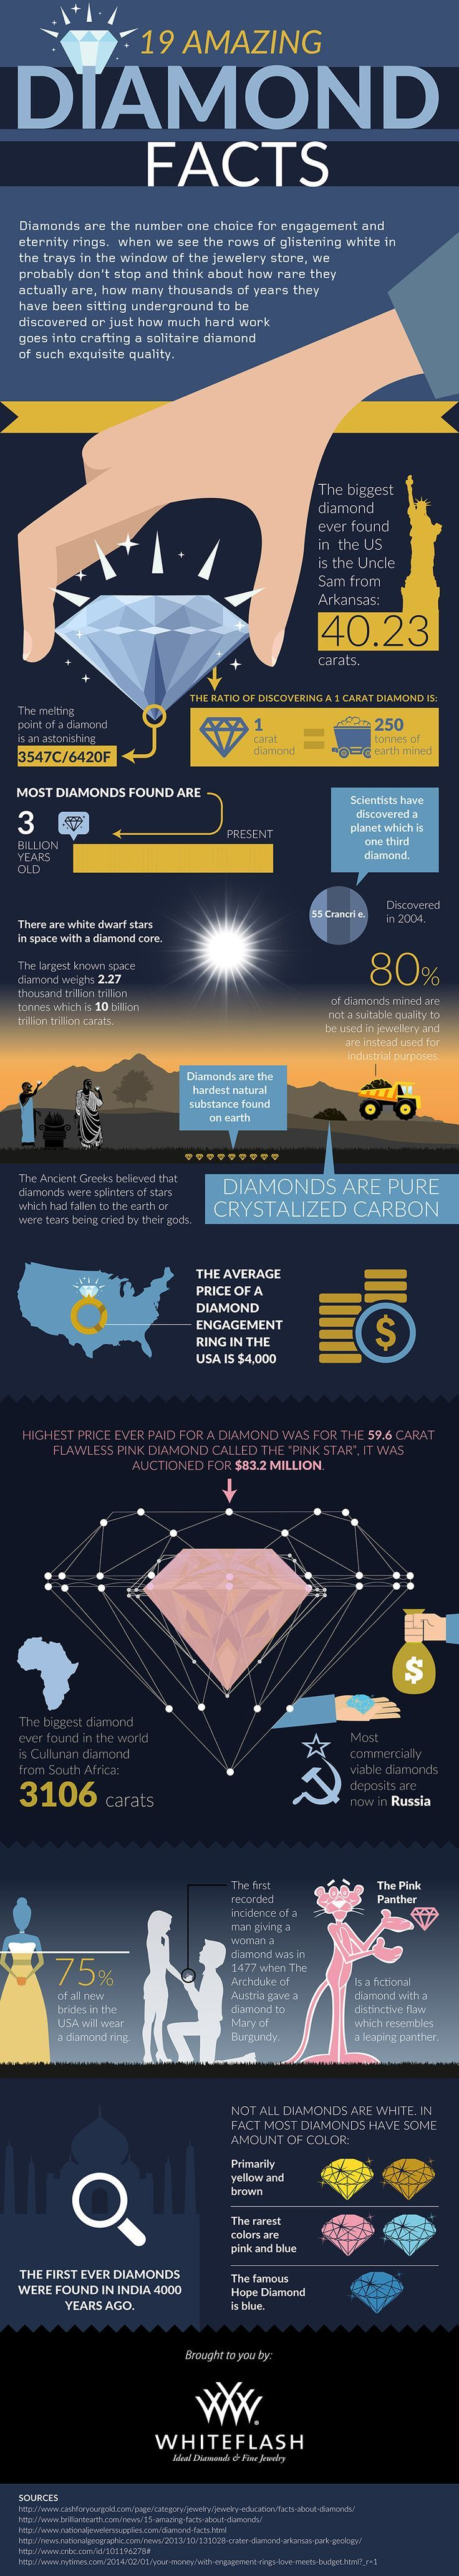 19 Amazing Facts about Diamonds Infographic Fun facts